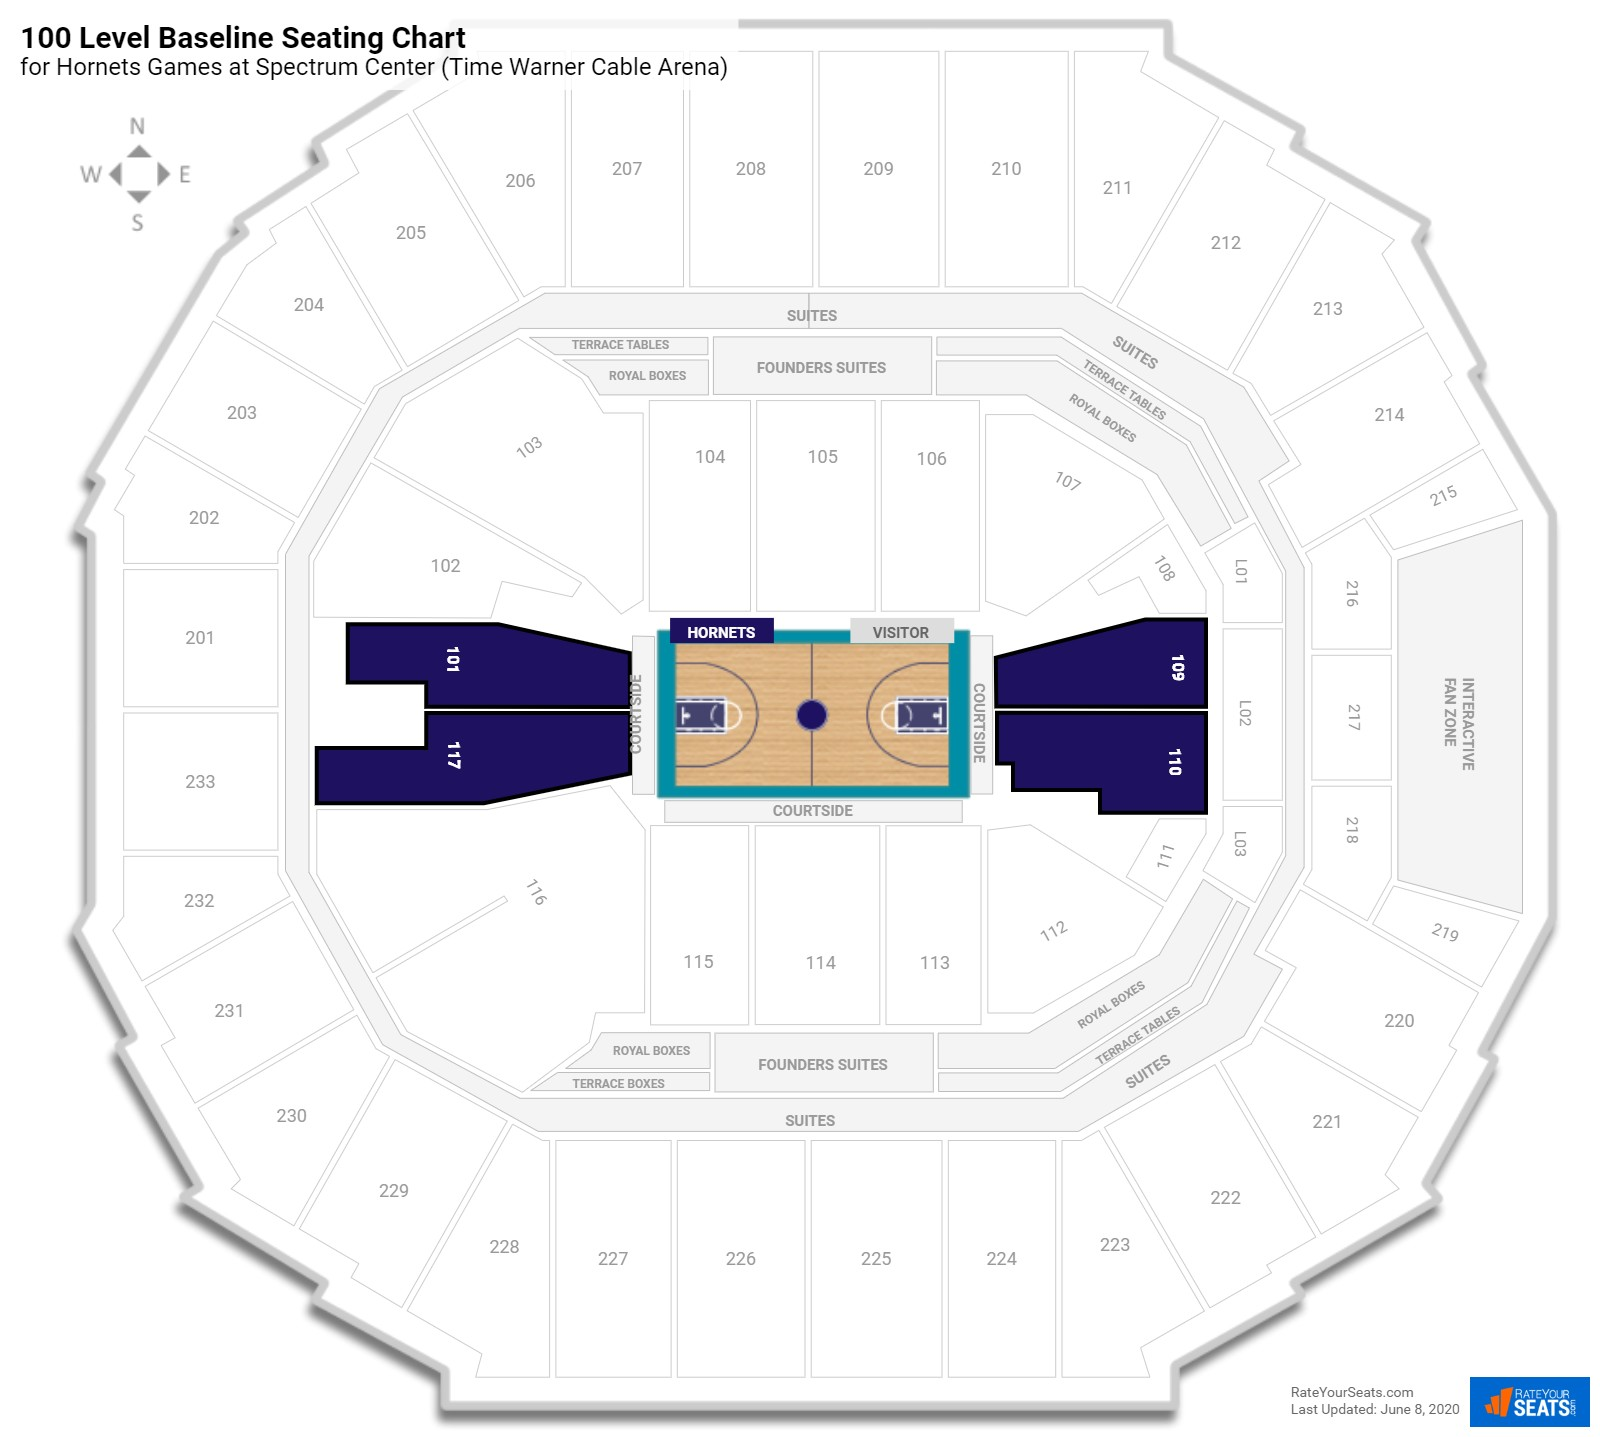 Spectrum Center (Time Warner Cable Arena) 100 Level Baseline seating chart